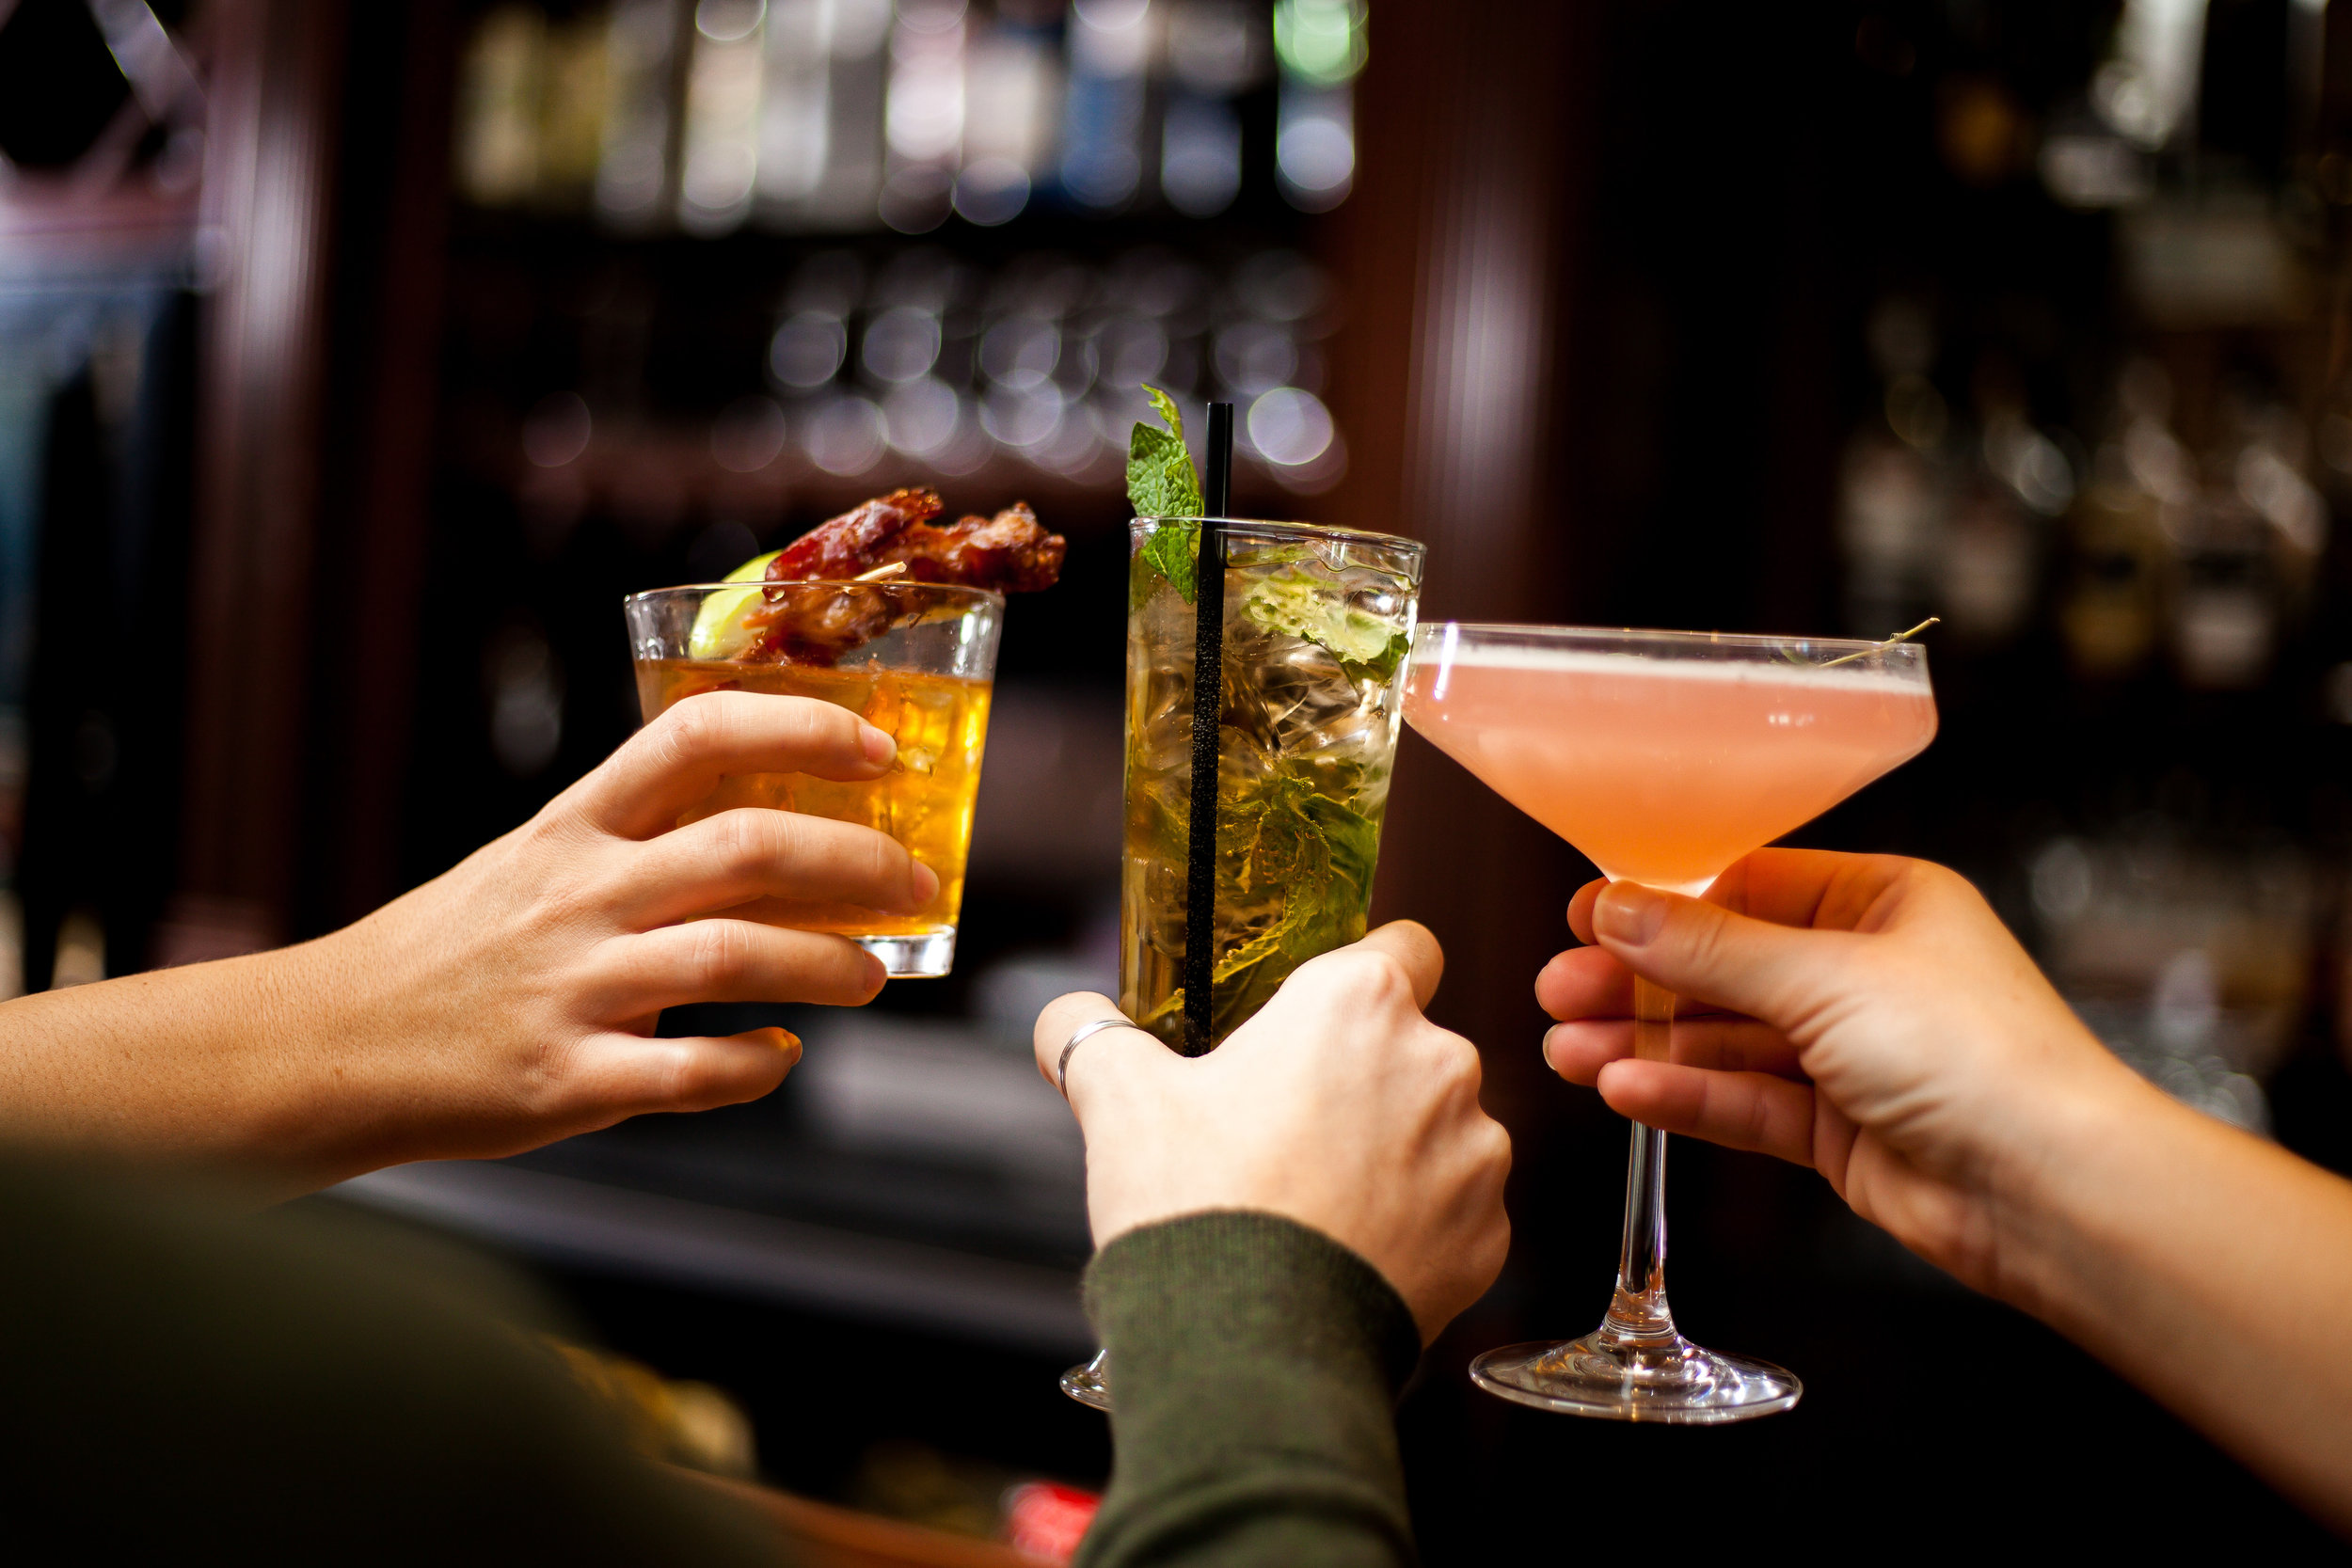 Picture of three cocktails being held and cheering at the bar.